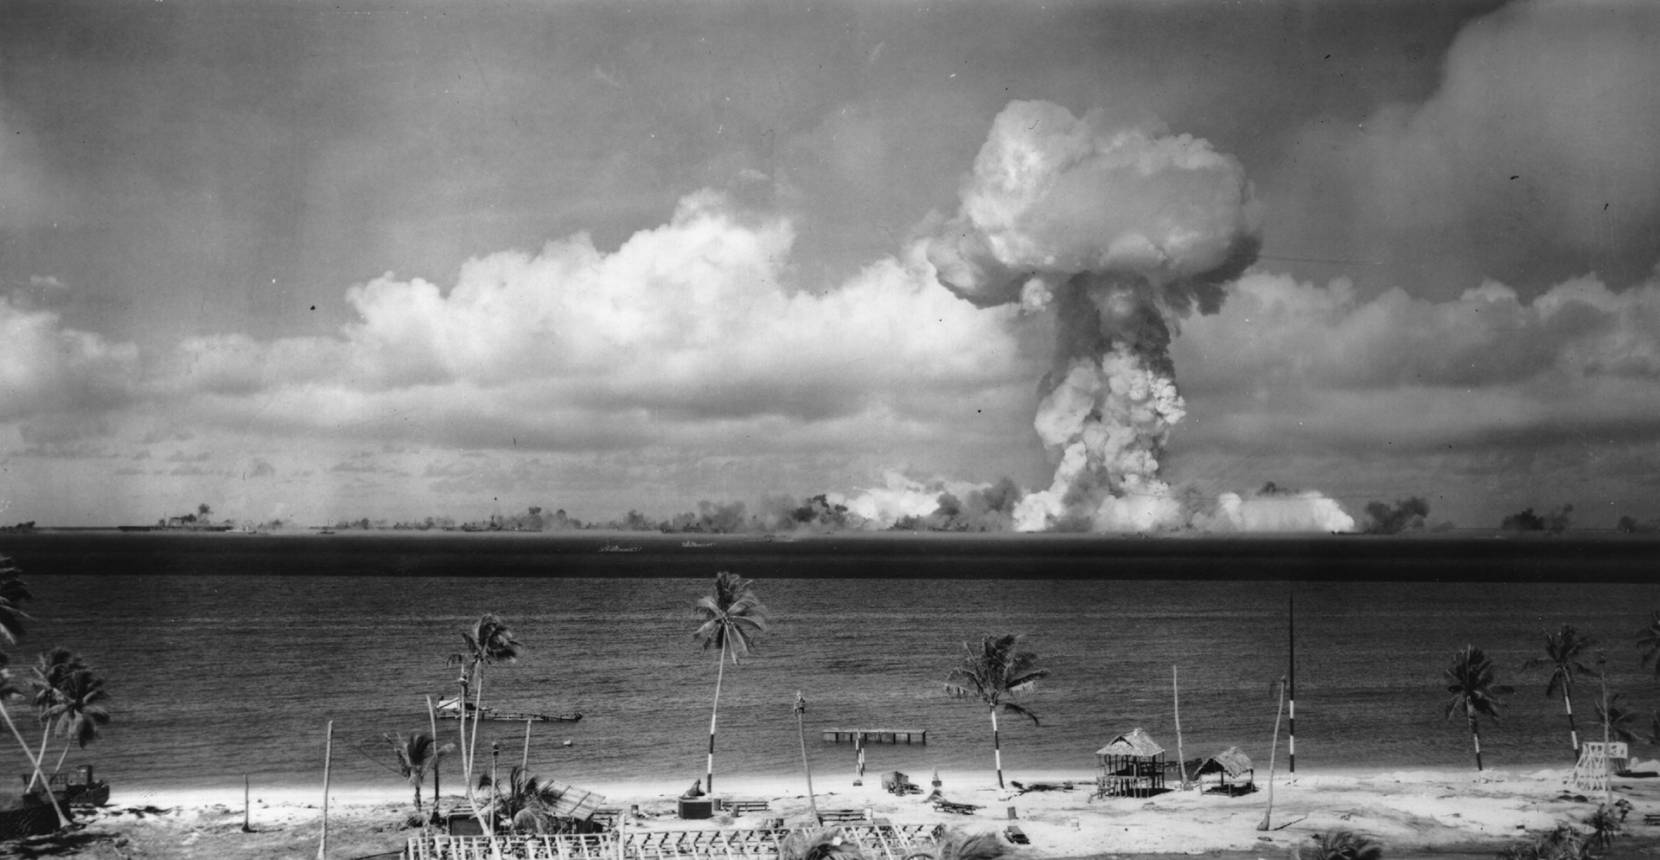 July 1946: A mushroom cloud forms after the initial Atomic Bomb test explosion off the coast of Bikini Atoll, Marshall Islands. (Photo by Keystone/Getty Images)